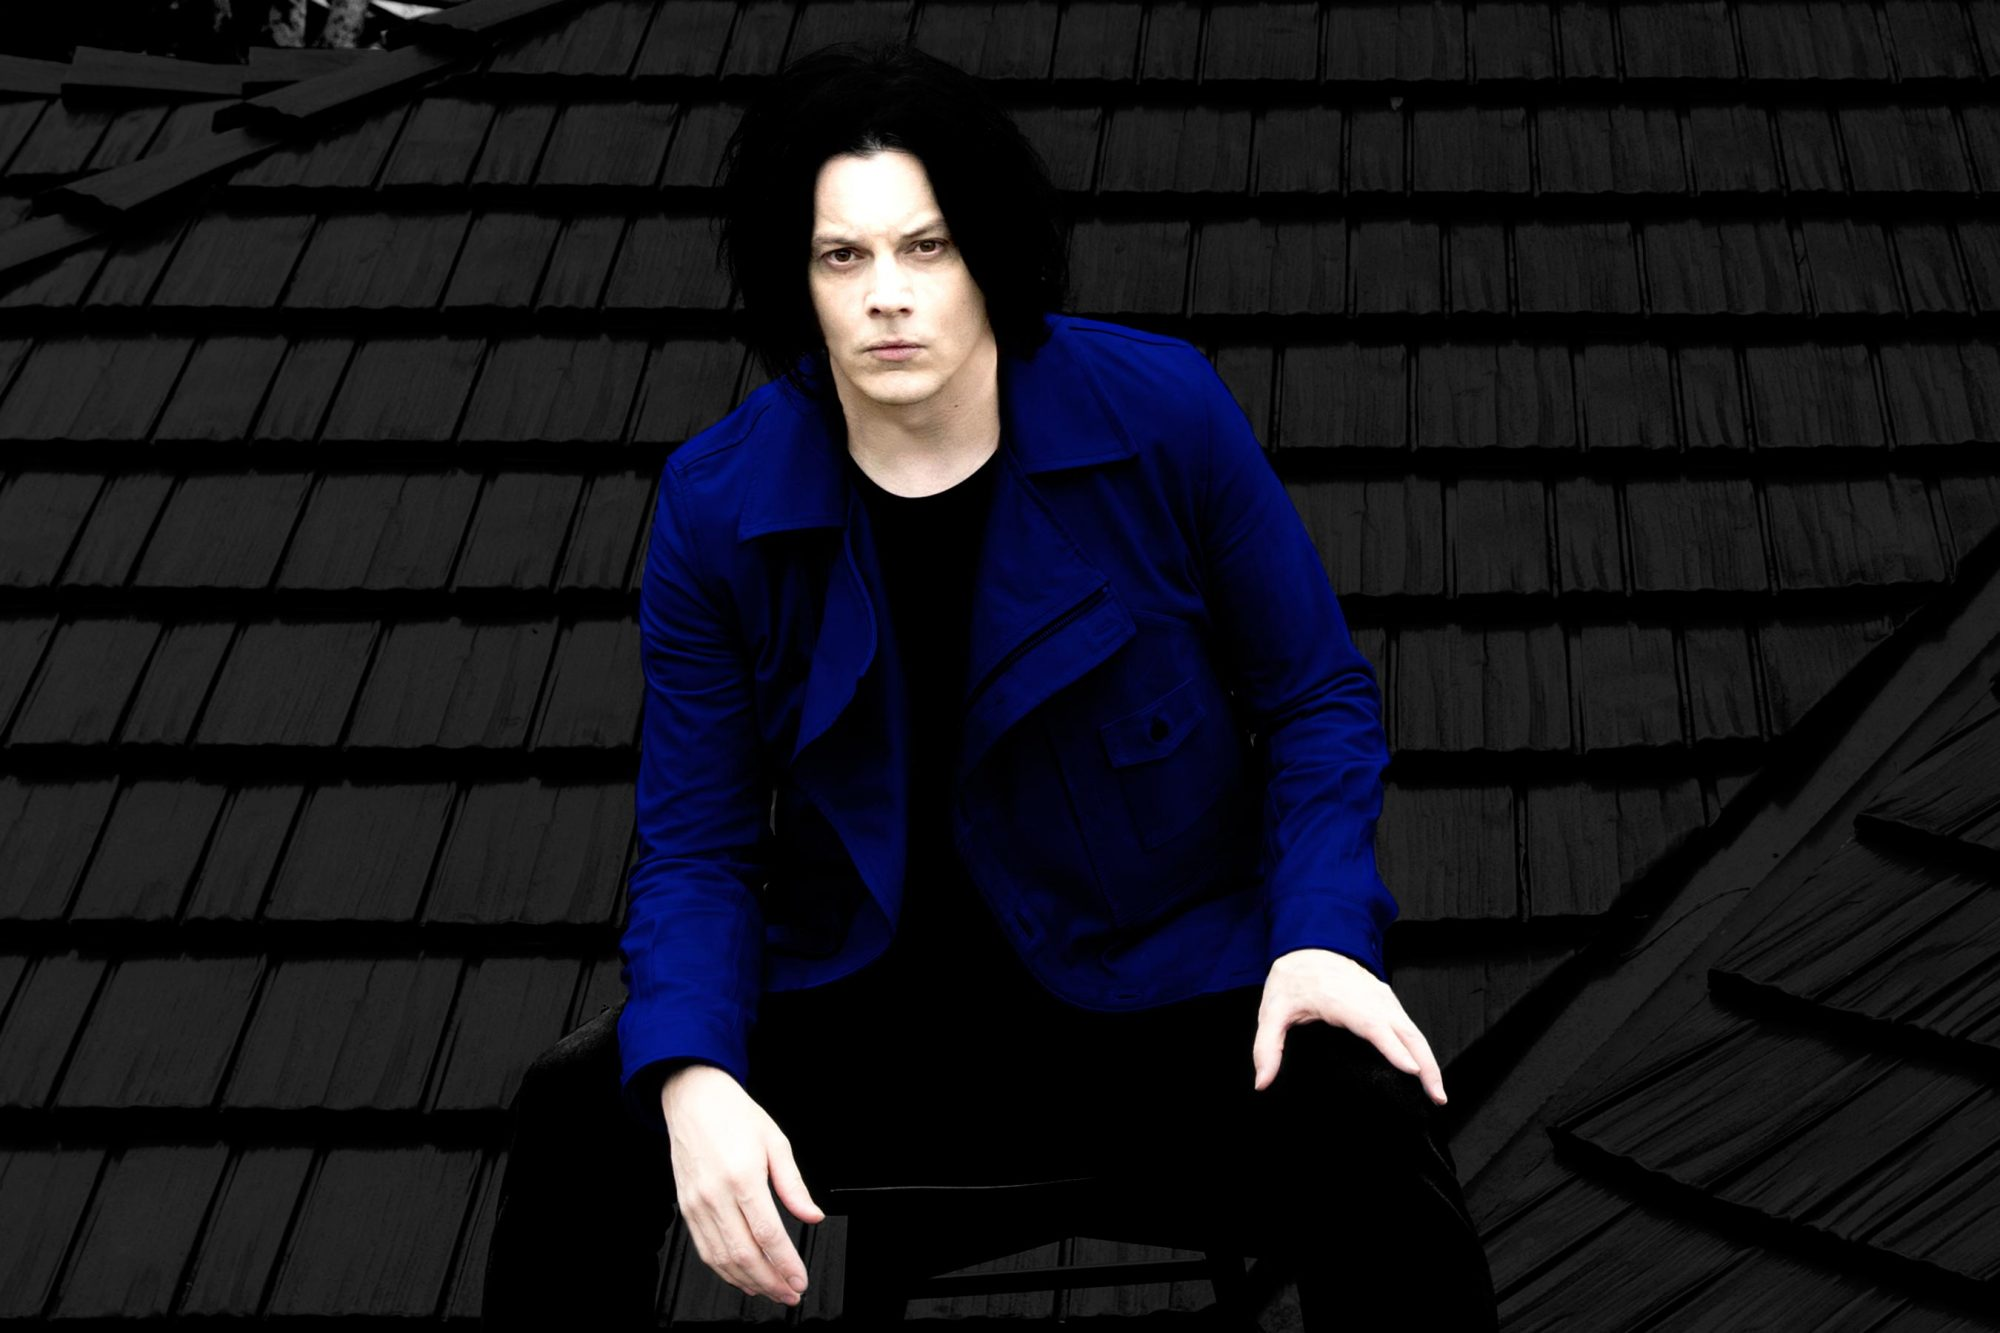 Jack-White-Approved-Press-Photo-#2-by-David-James-Swanson-(1)